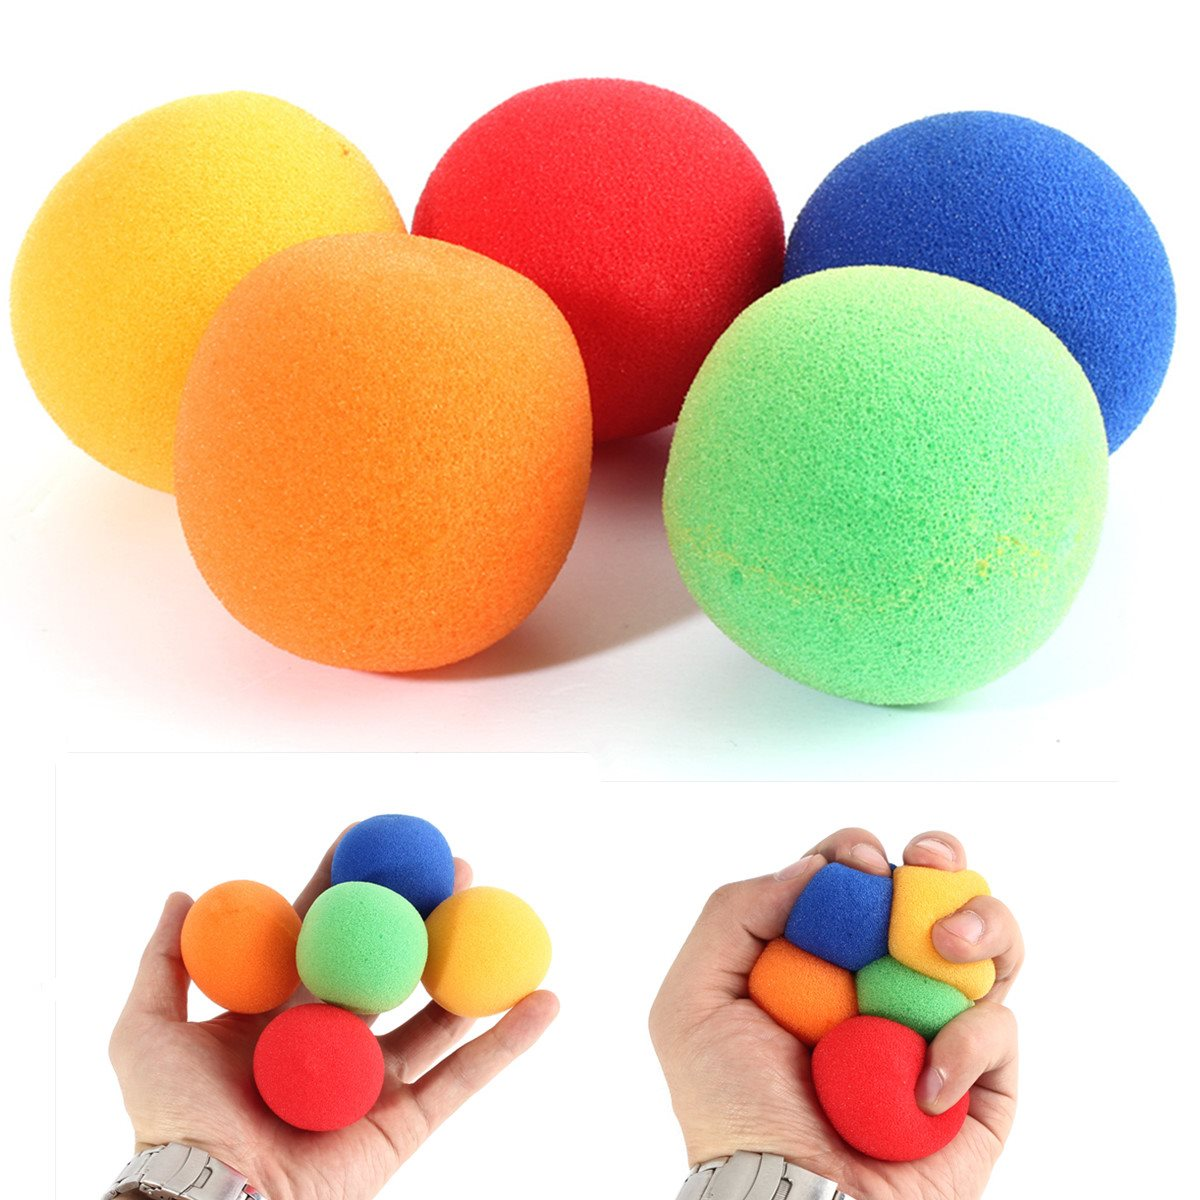 5pcs/set 5 color 4.5cm large size Close Up Magic Street Classical Comedy Trick Soft Sponge Balls